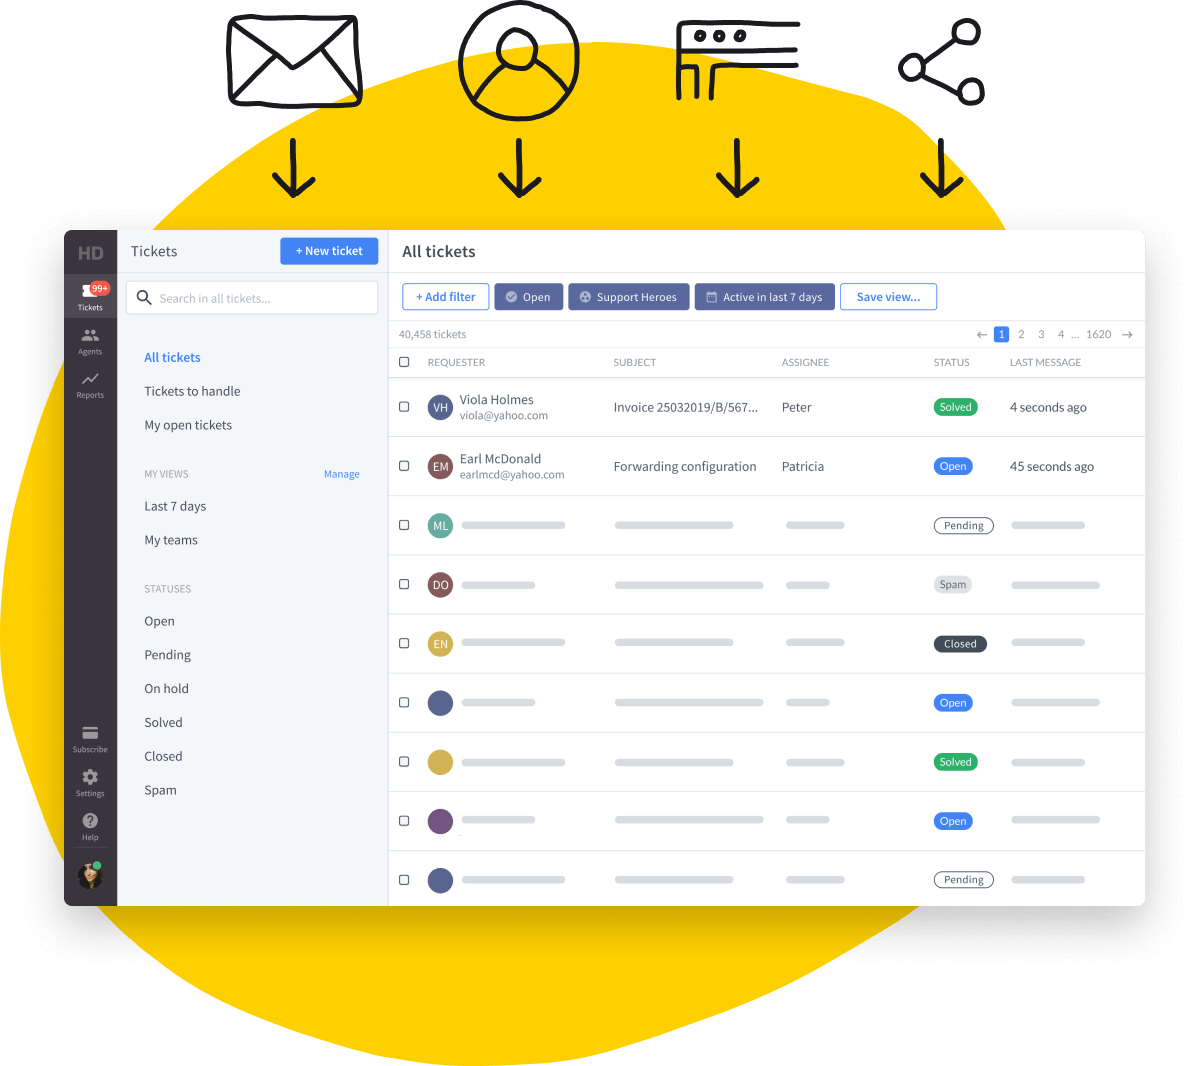 HelpDesk dashboard with small illustrations: envelope, avatar, app window, and 3 connected dots